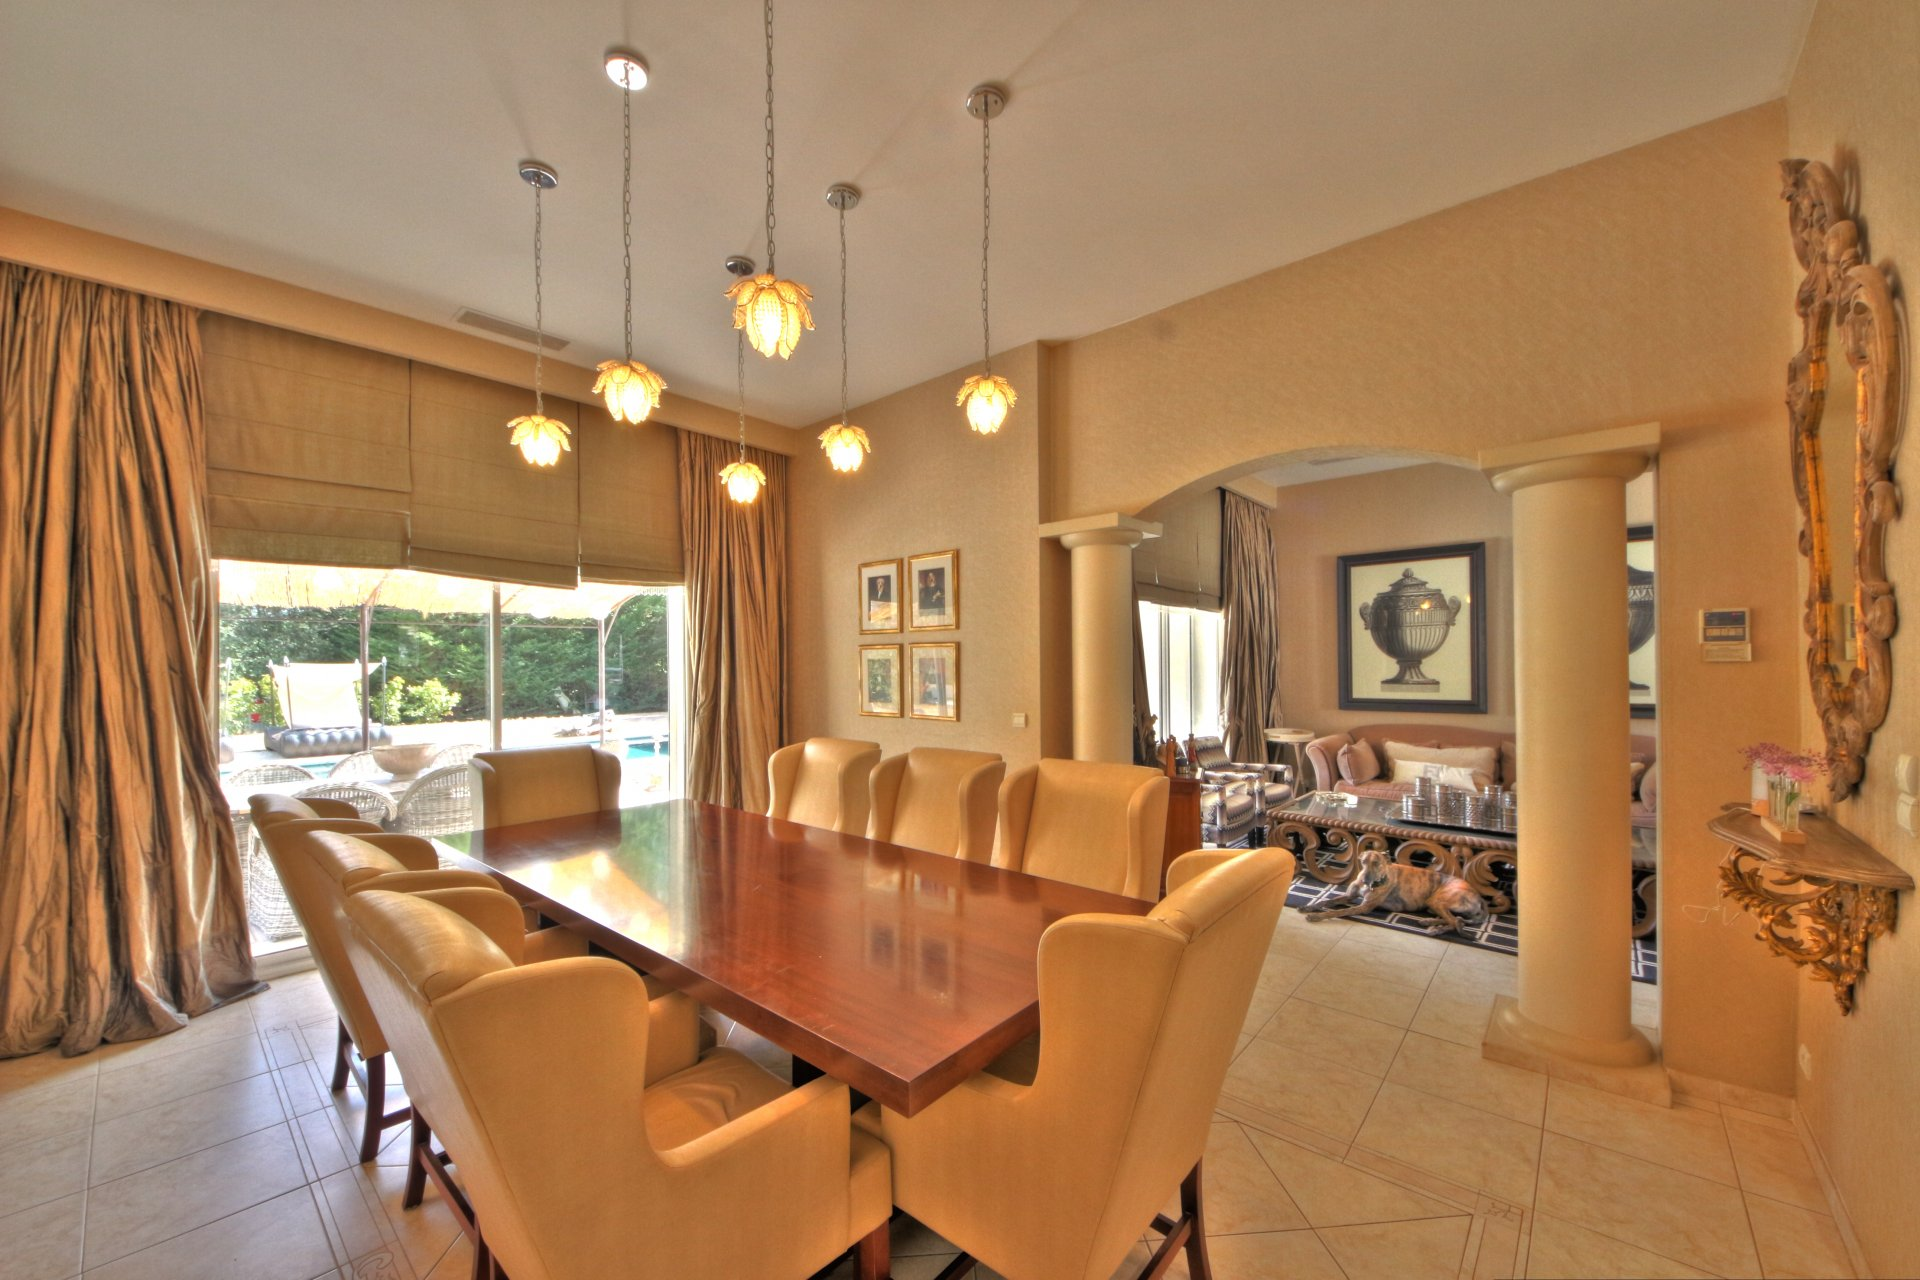 Dining room with pool view, access to the outdoor terrace